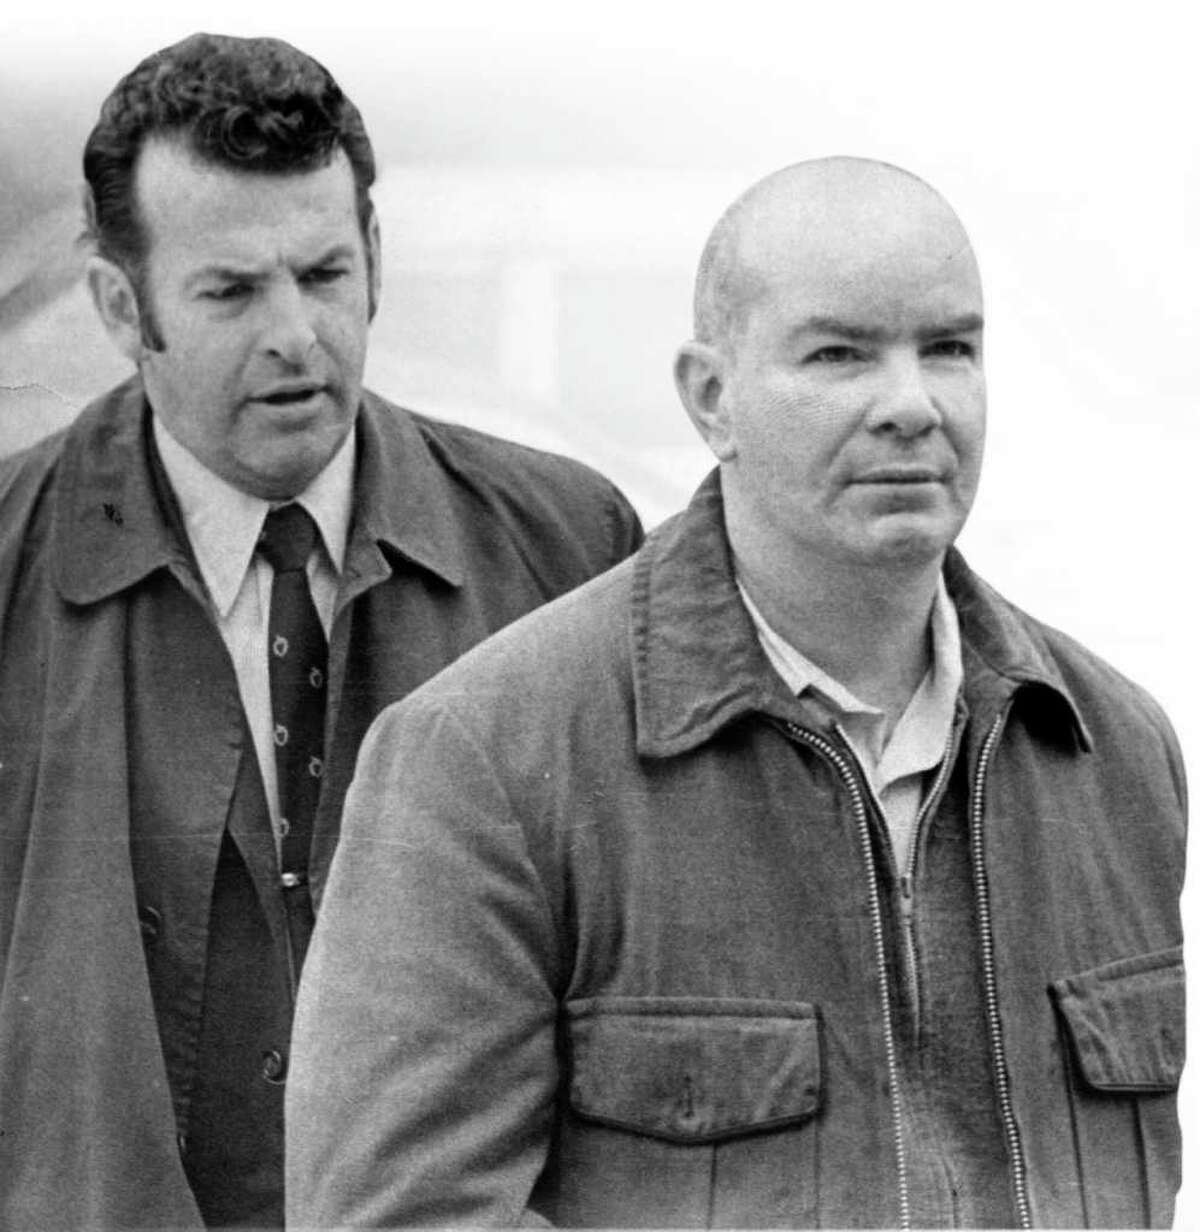 George Mayer, then a Stamford police detective, escorts Ben Miller into police headquarters on March 16, 1972, when Miller was booked on five counts of murder.